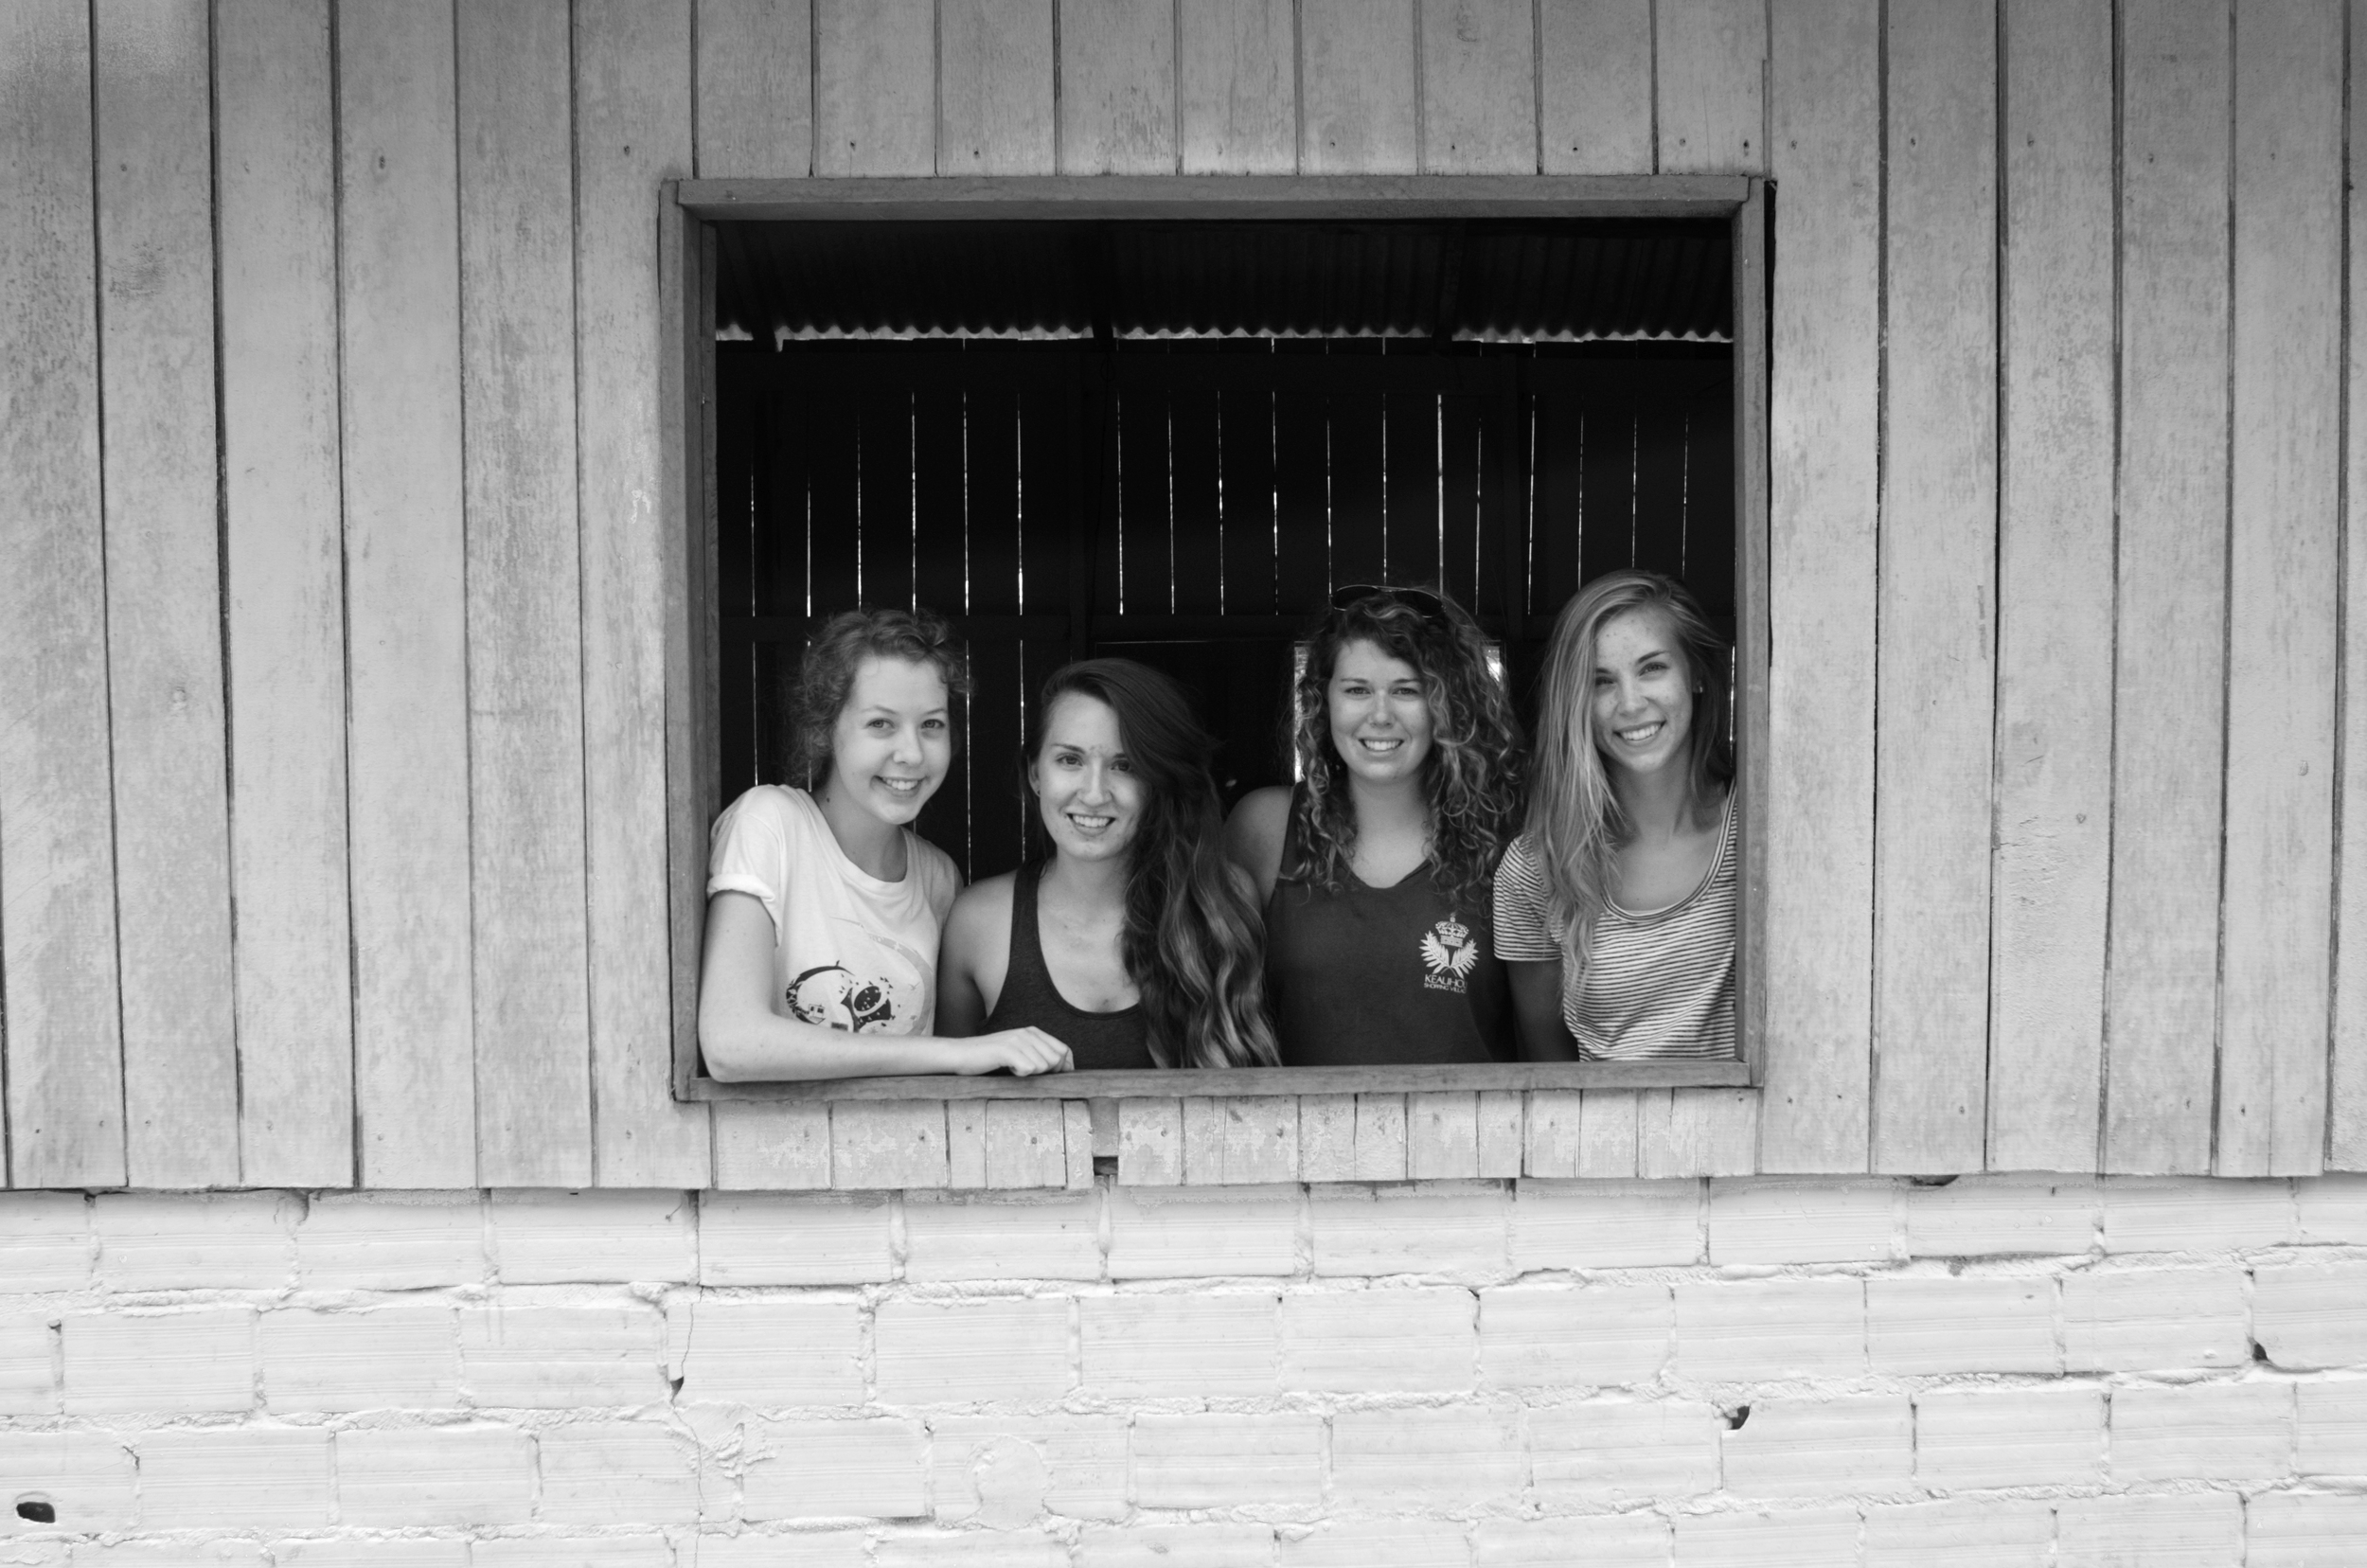 Joy, me, Heather, Natasha- posing in a village church window. This place will always be remembered for it's plumbing...